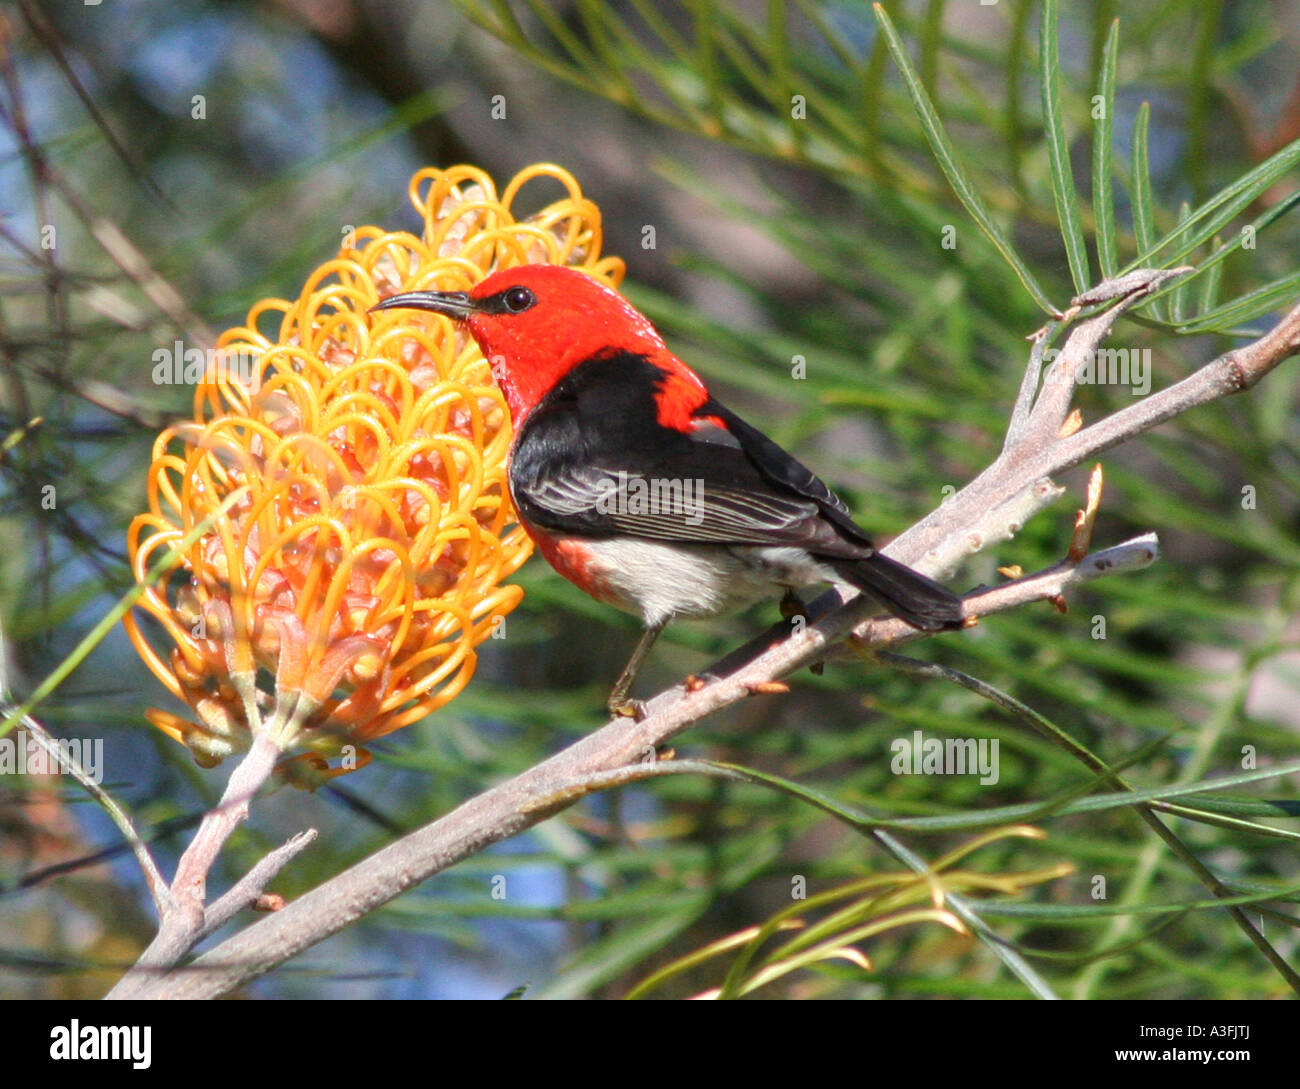 A SCARLET HONEYEATER FEEDING ON GREVILLEA TREES BAPDA9151 - Stock Image